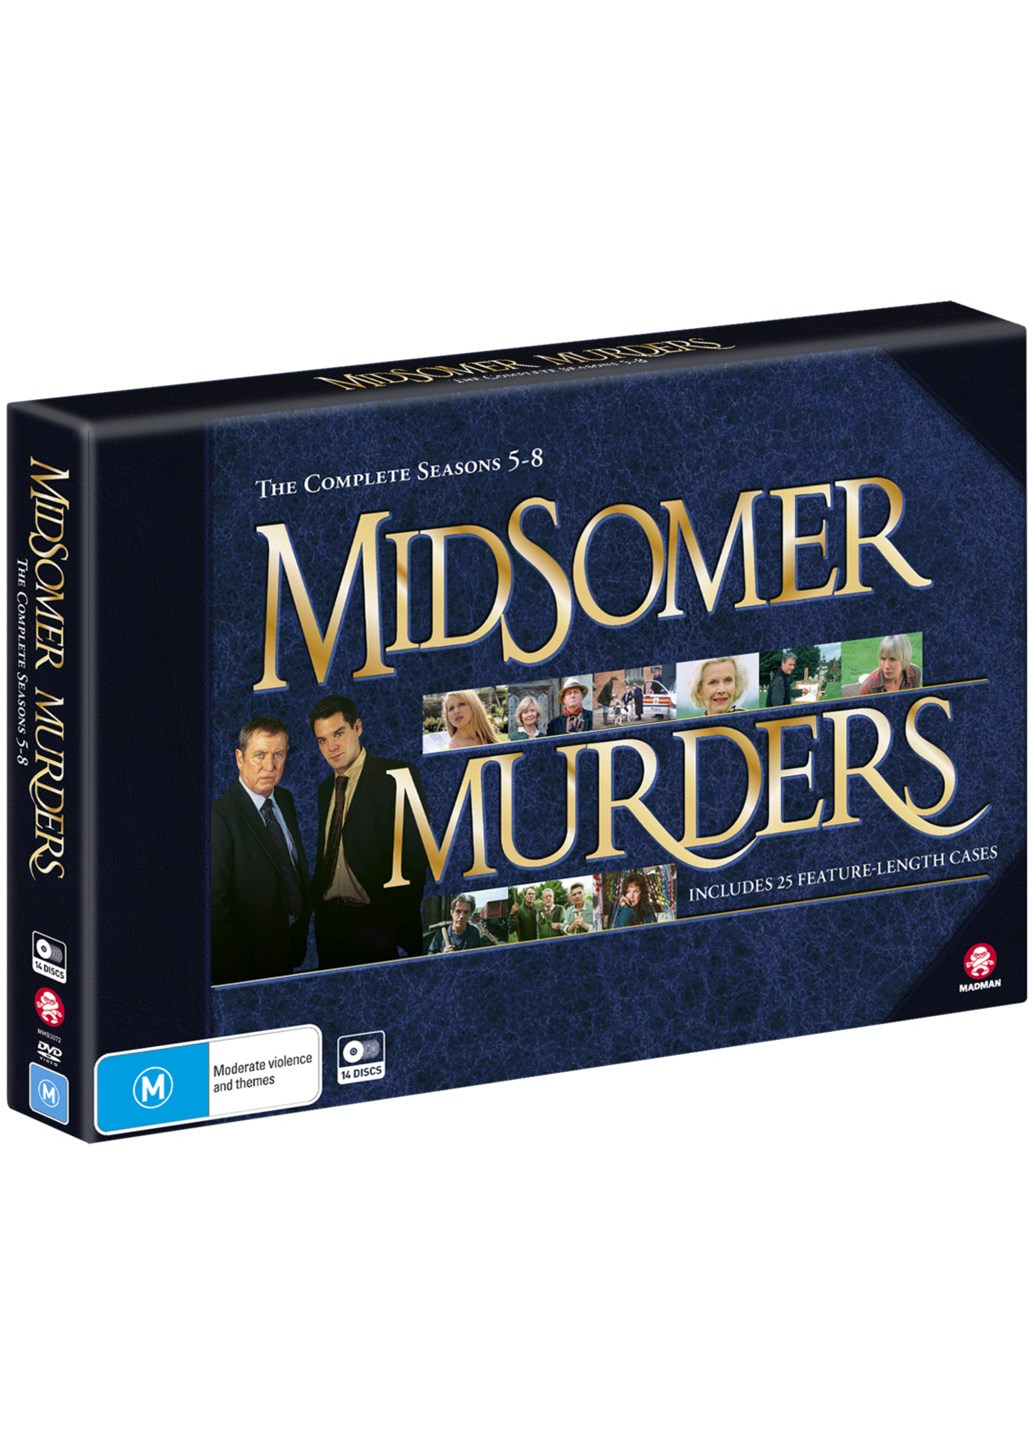 Midsomer Murders: Season 5 - 8 Collection (Limited Edition)